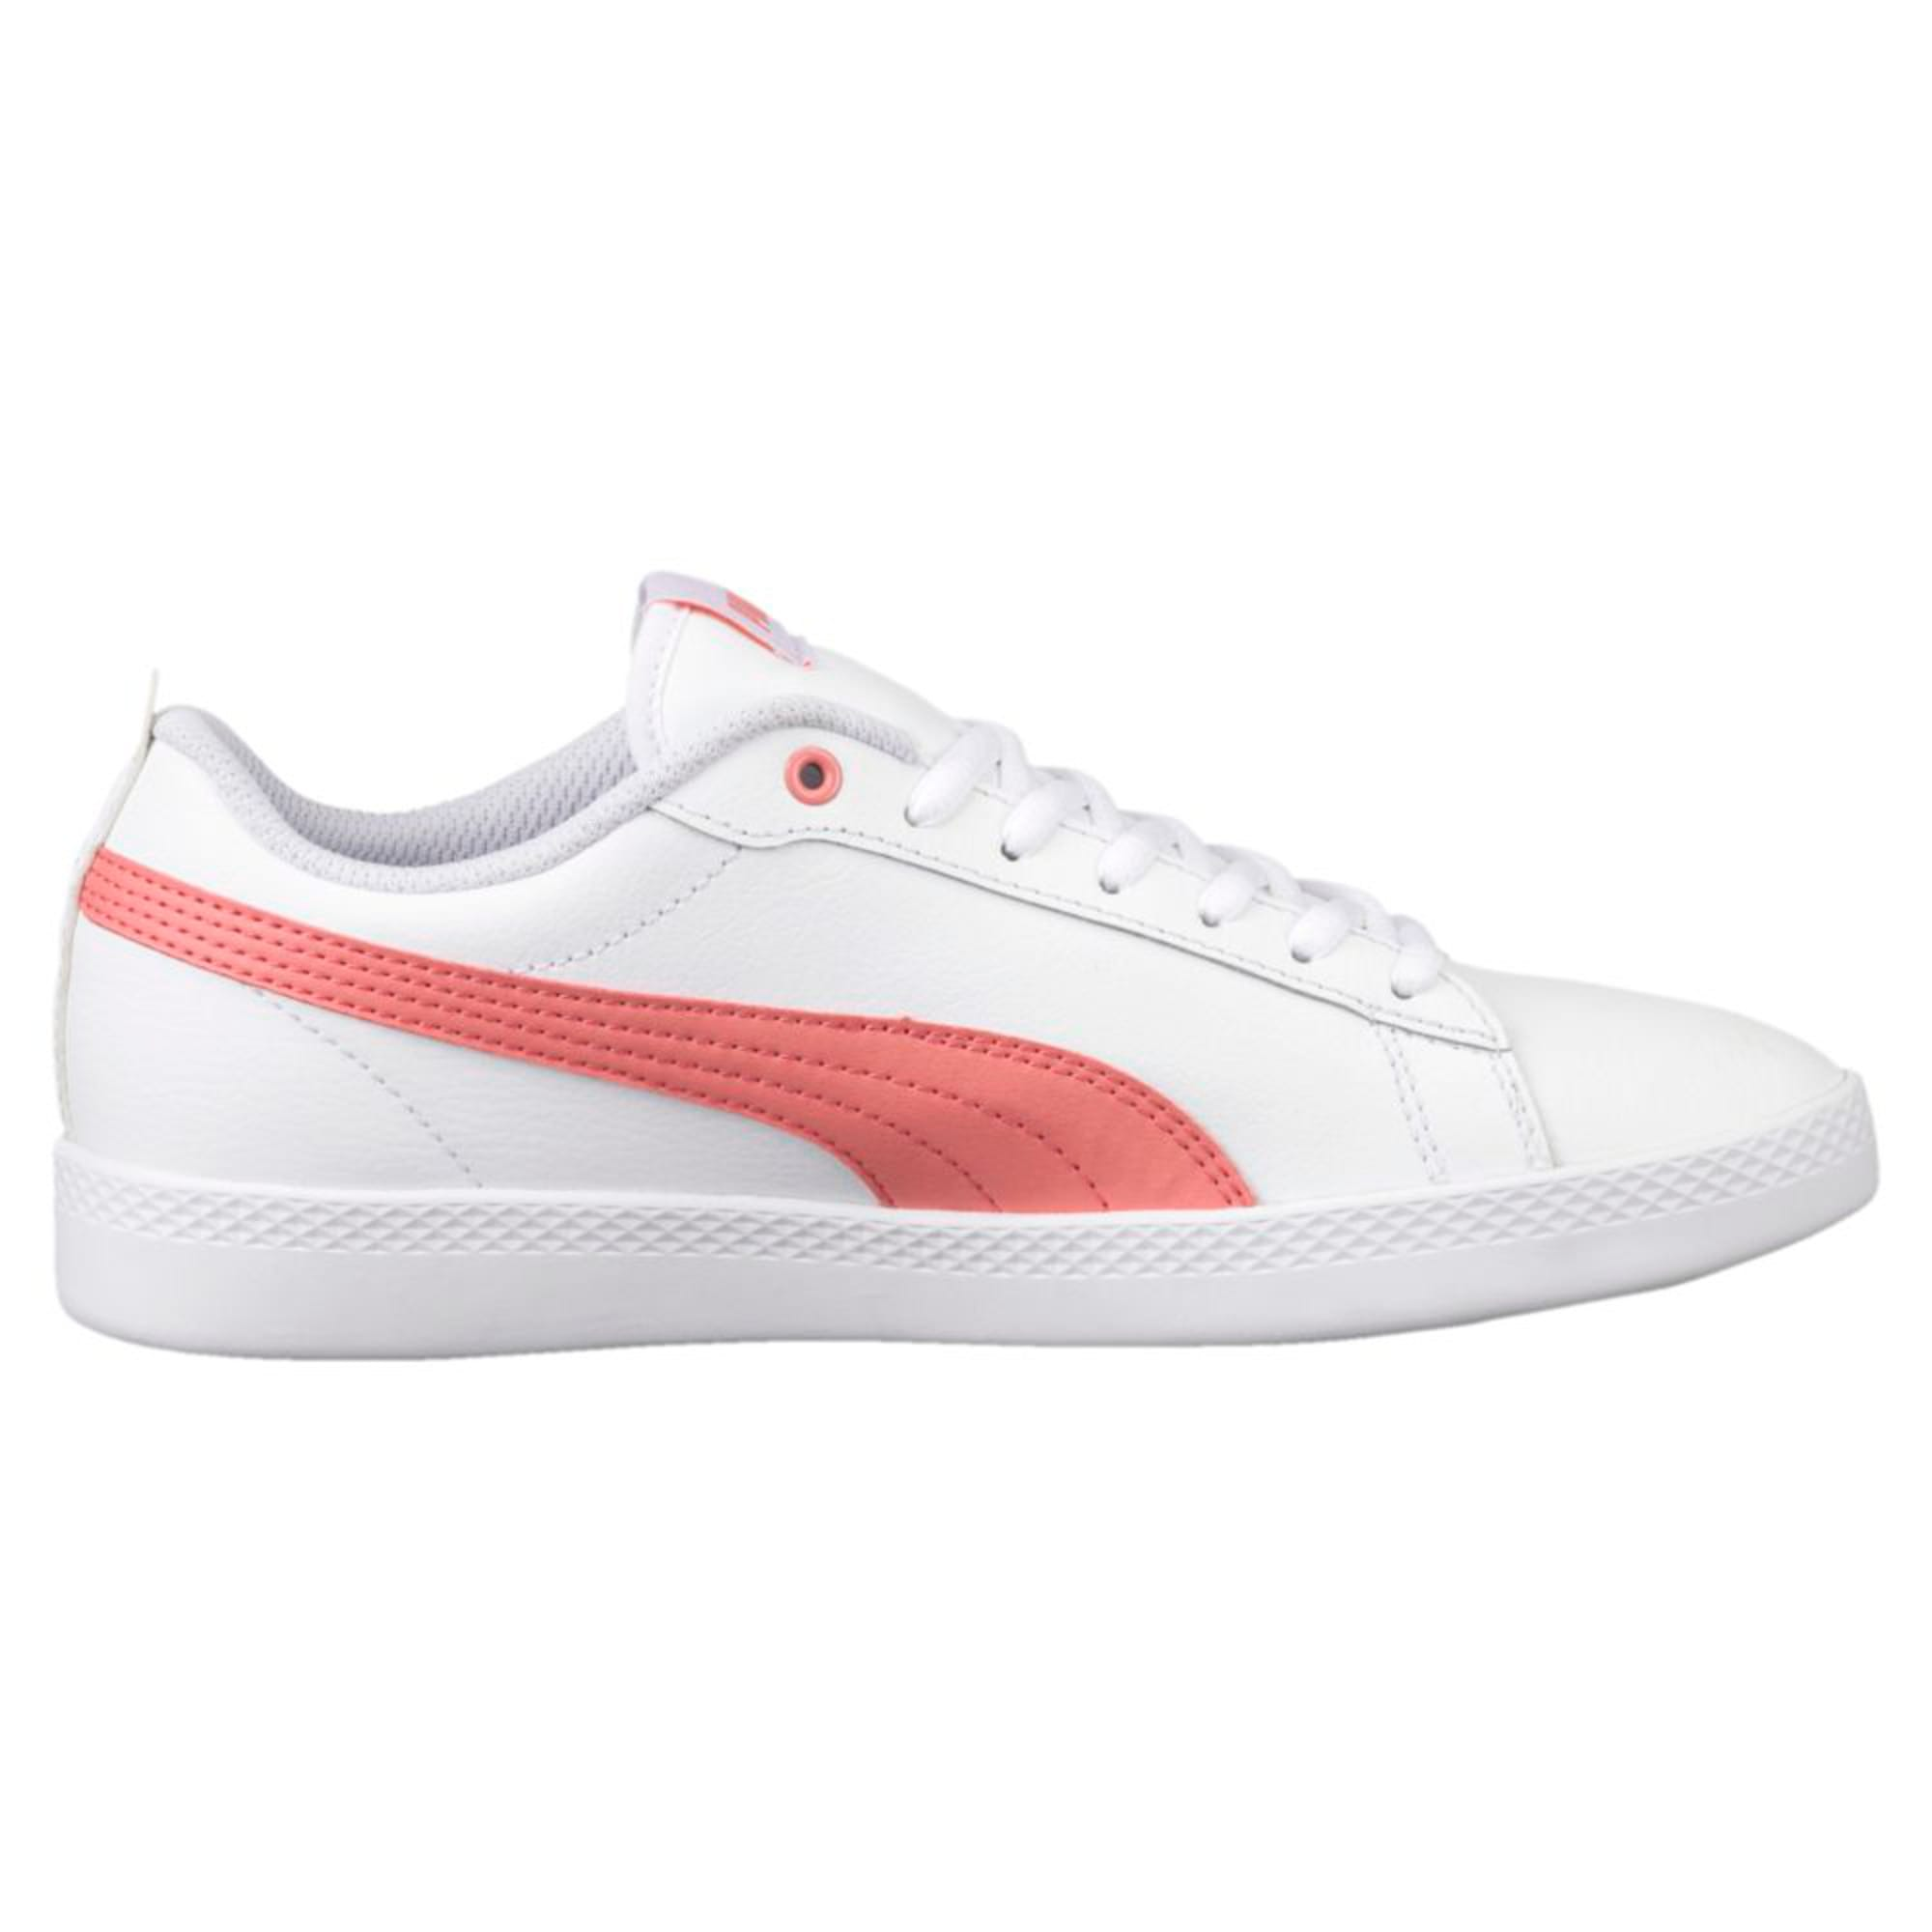 Thumbnail 2 of Smash v2 Leather Women's Trainers, Puma White-Shell Pink, medium-IND